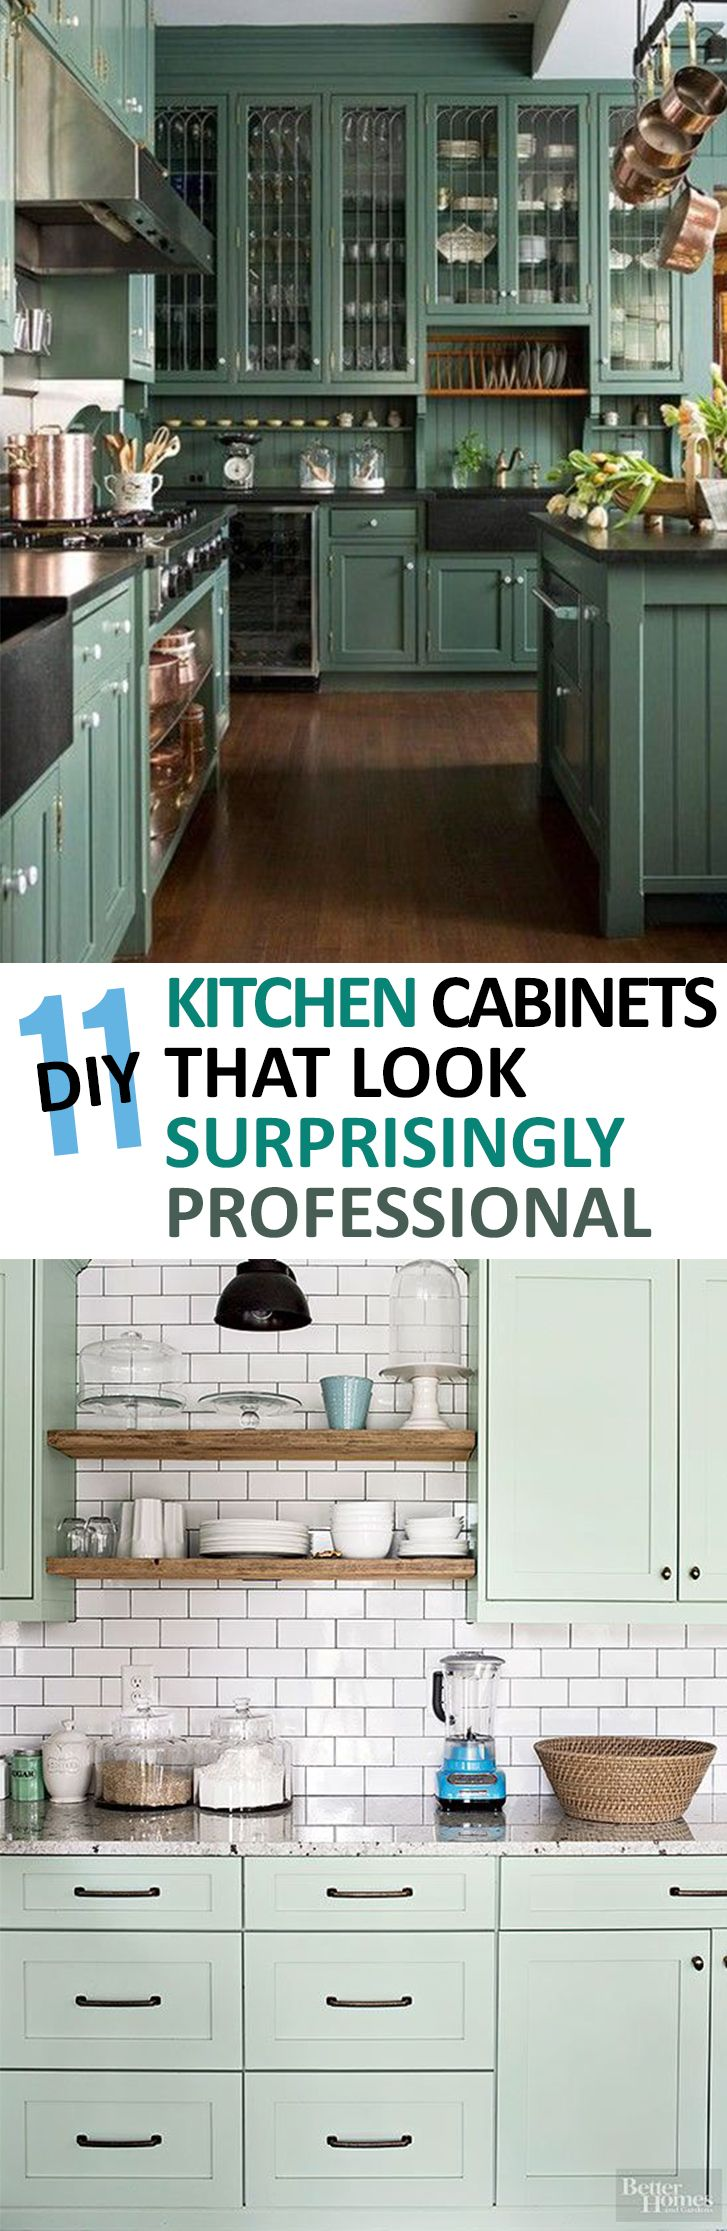 Diy Small Kitchens top 25+ best diy kitchen cabinets ideas on pinterest | diy kitchen